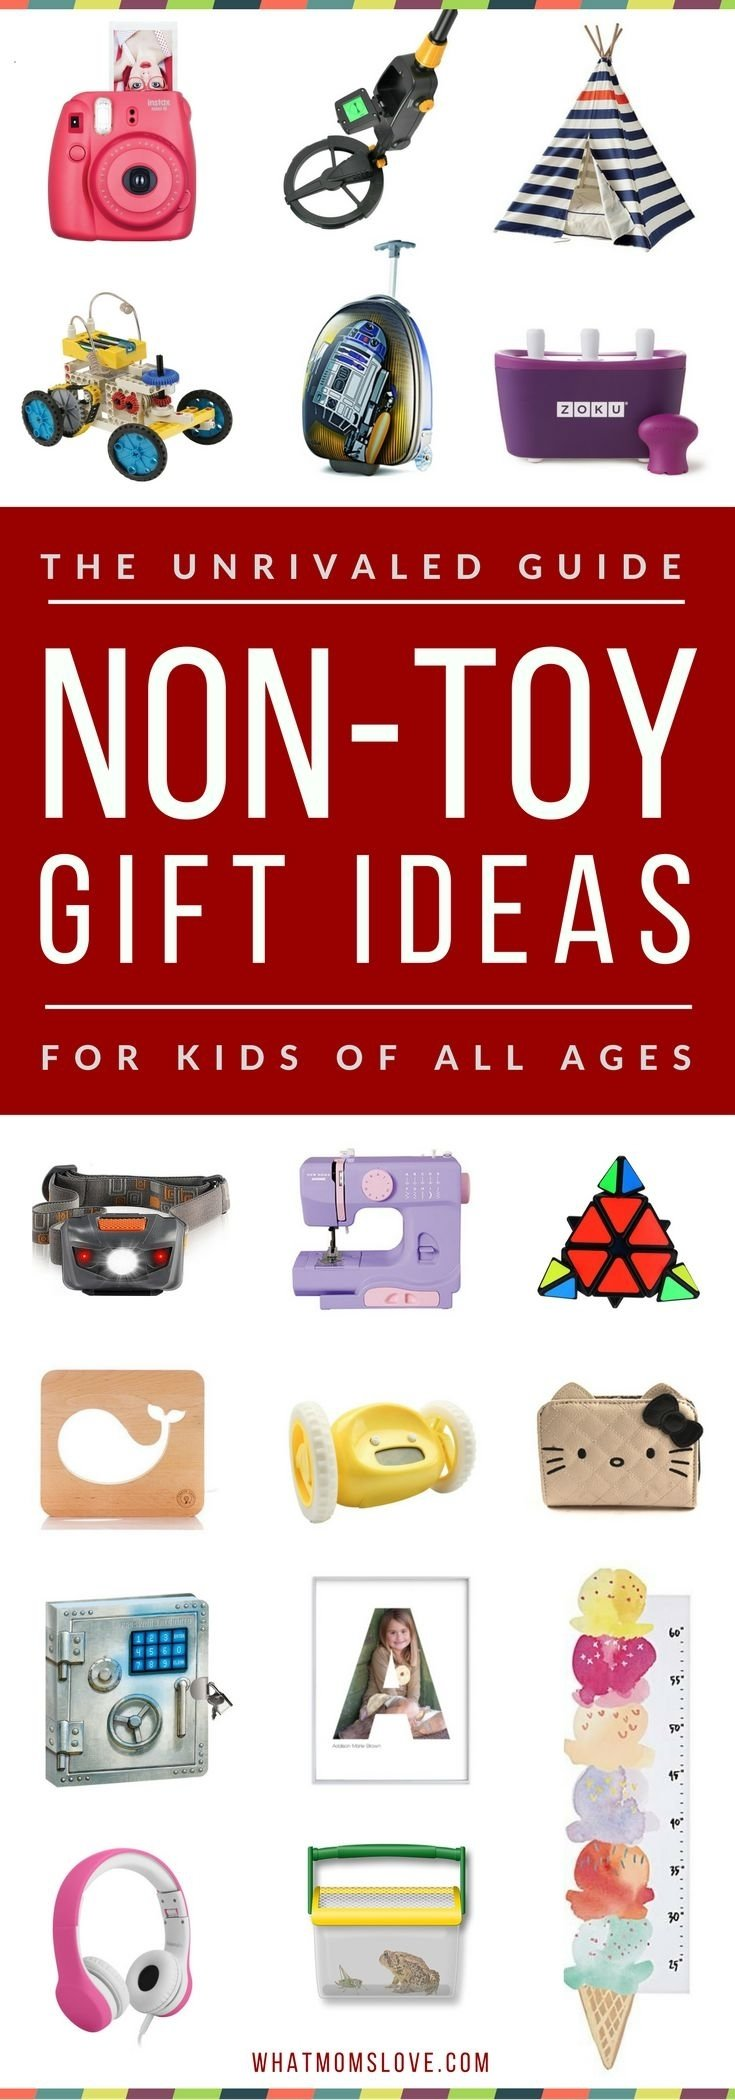 10 Attractive Holiday Gift Ideas For Kids 210 best gift ideas images on pinterest christmas gift ideas gift 1 2021